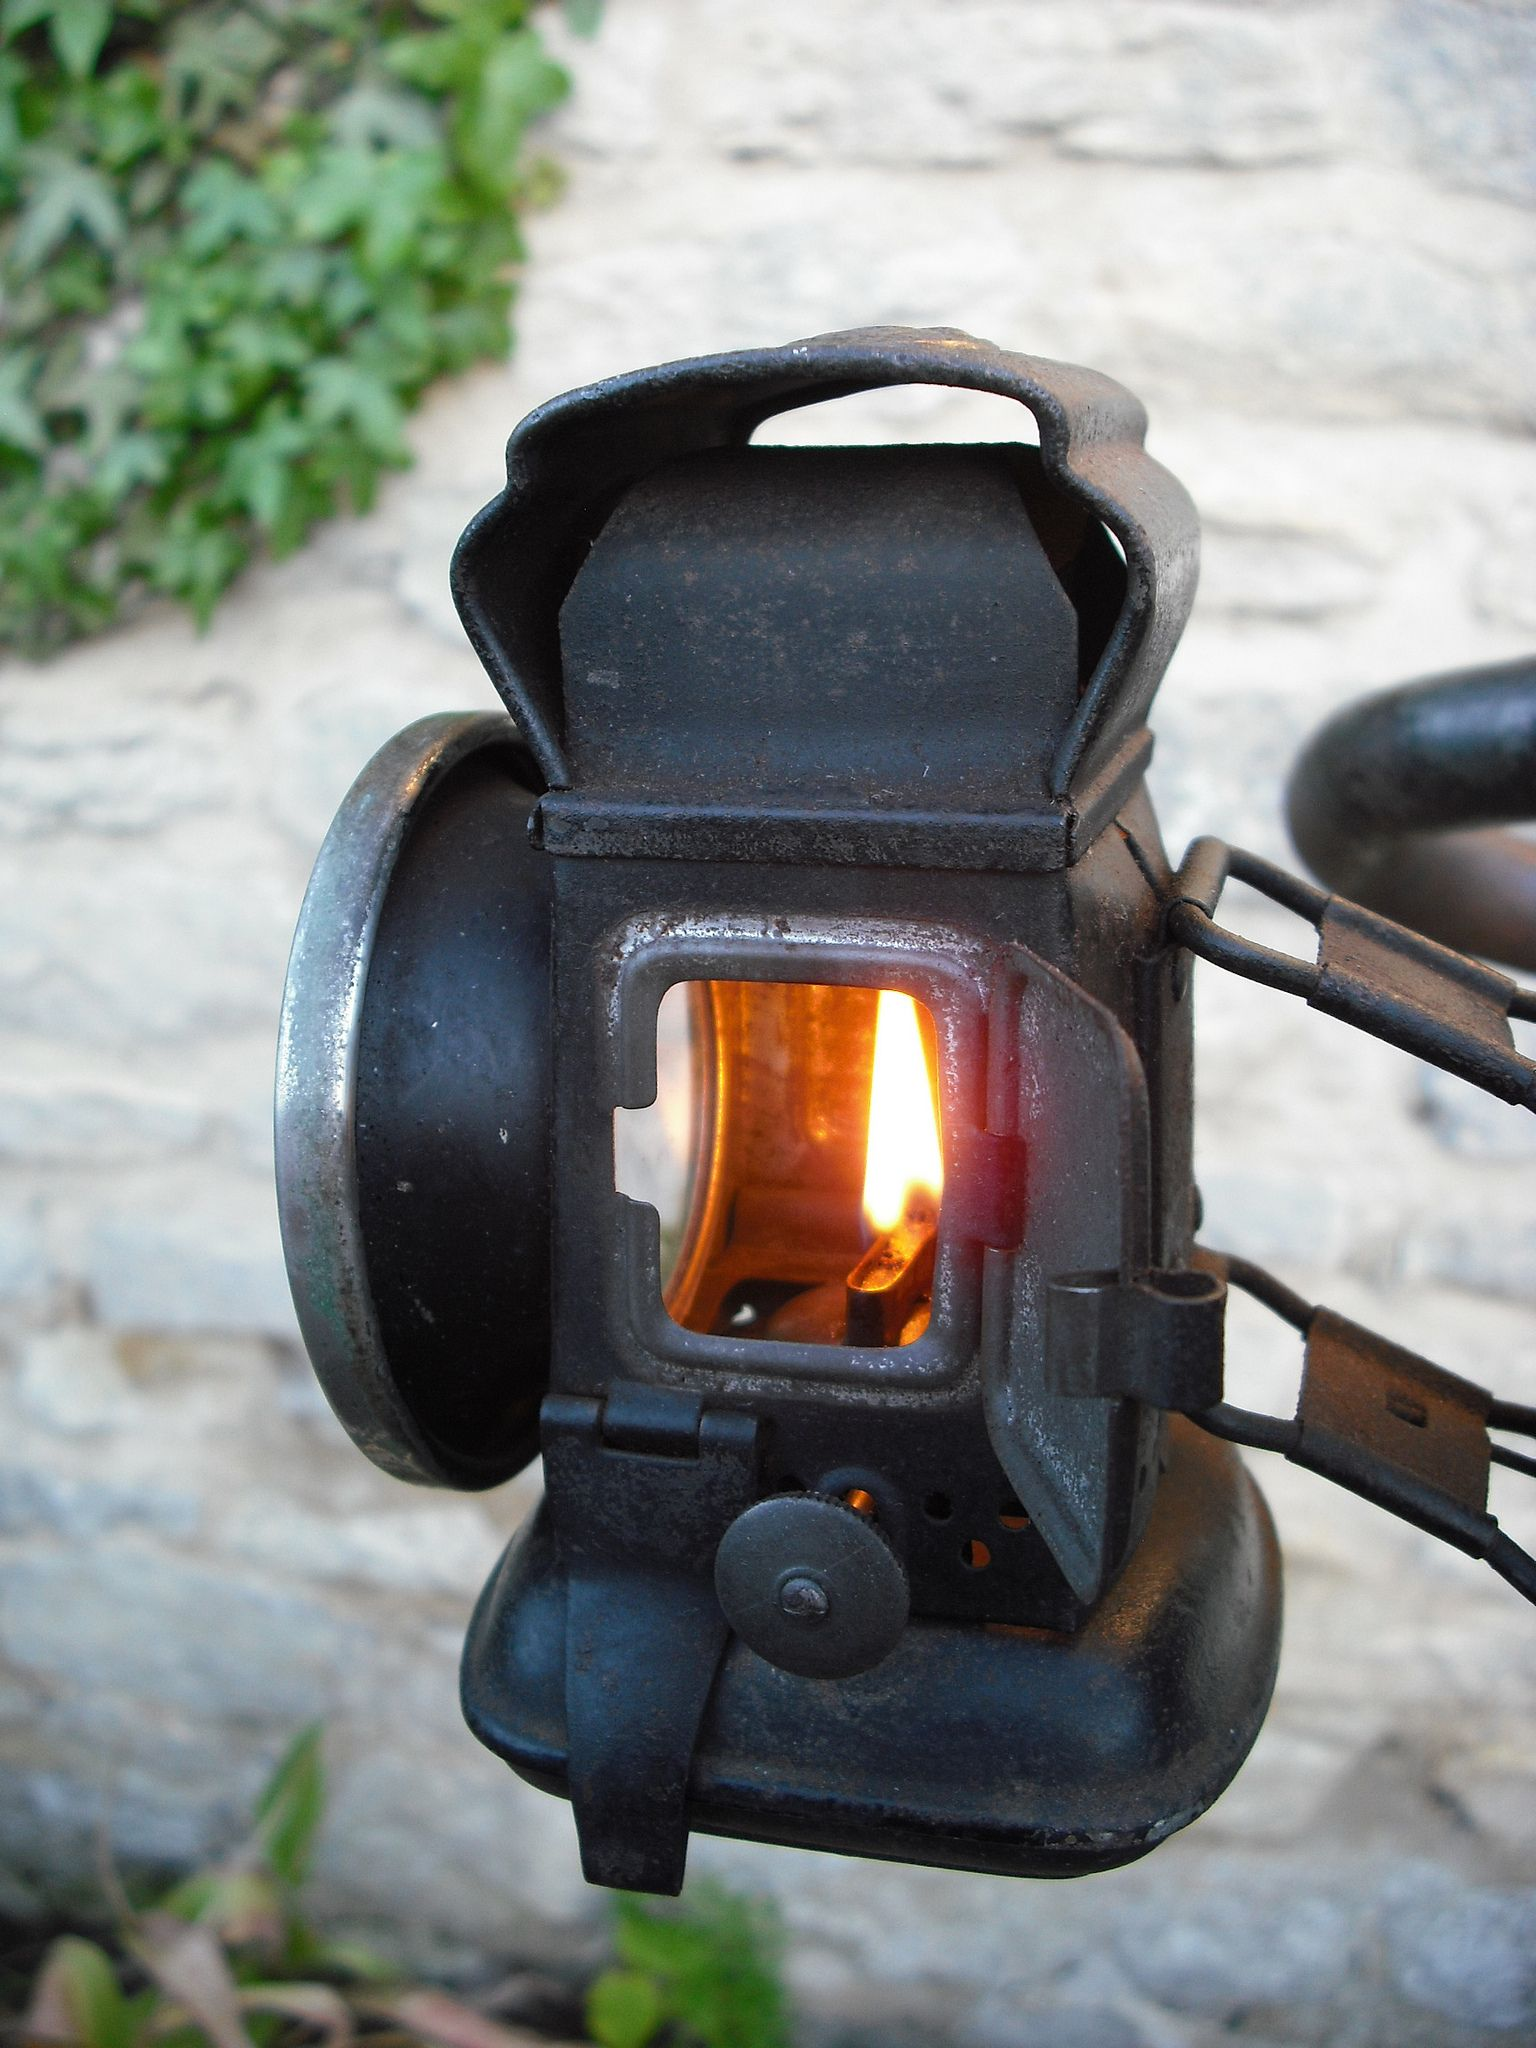 https://flic.kr/p/nsprnm | Vintage Currys Path Racer | Oil lamp